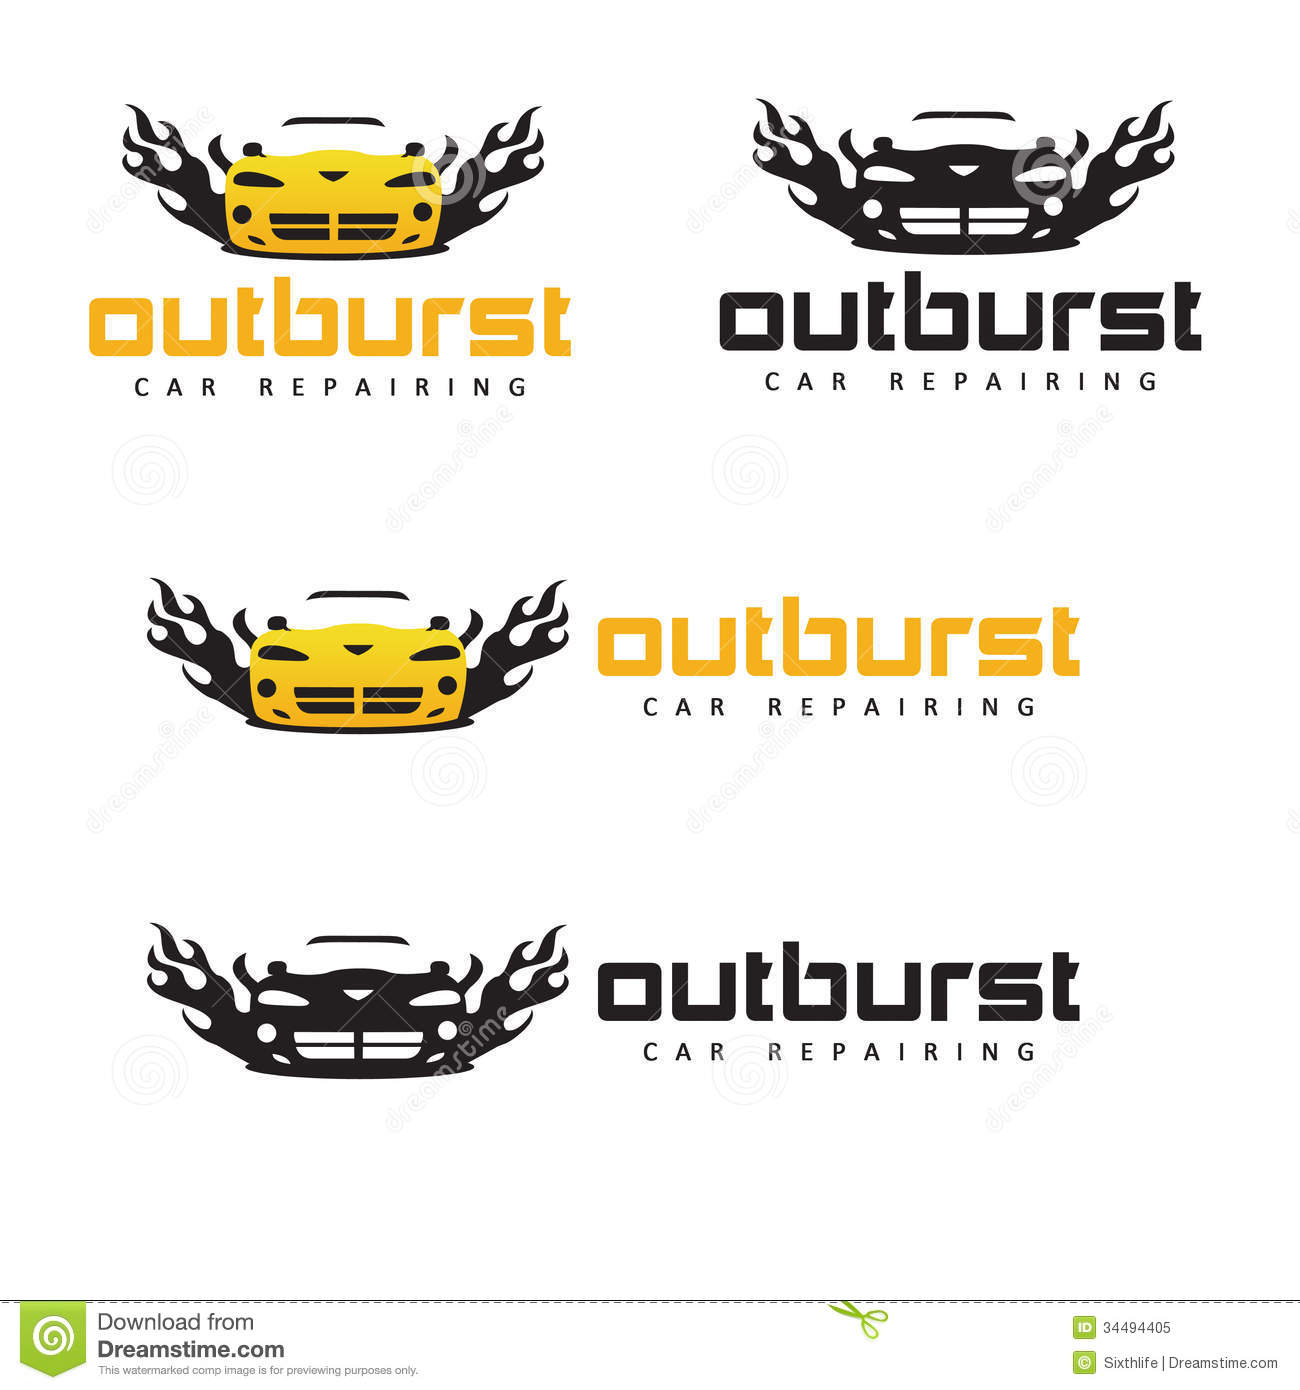 Car and Bike Company Logos by British Design Experts@Share on car ...